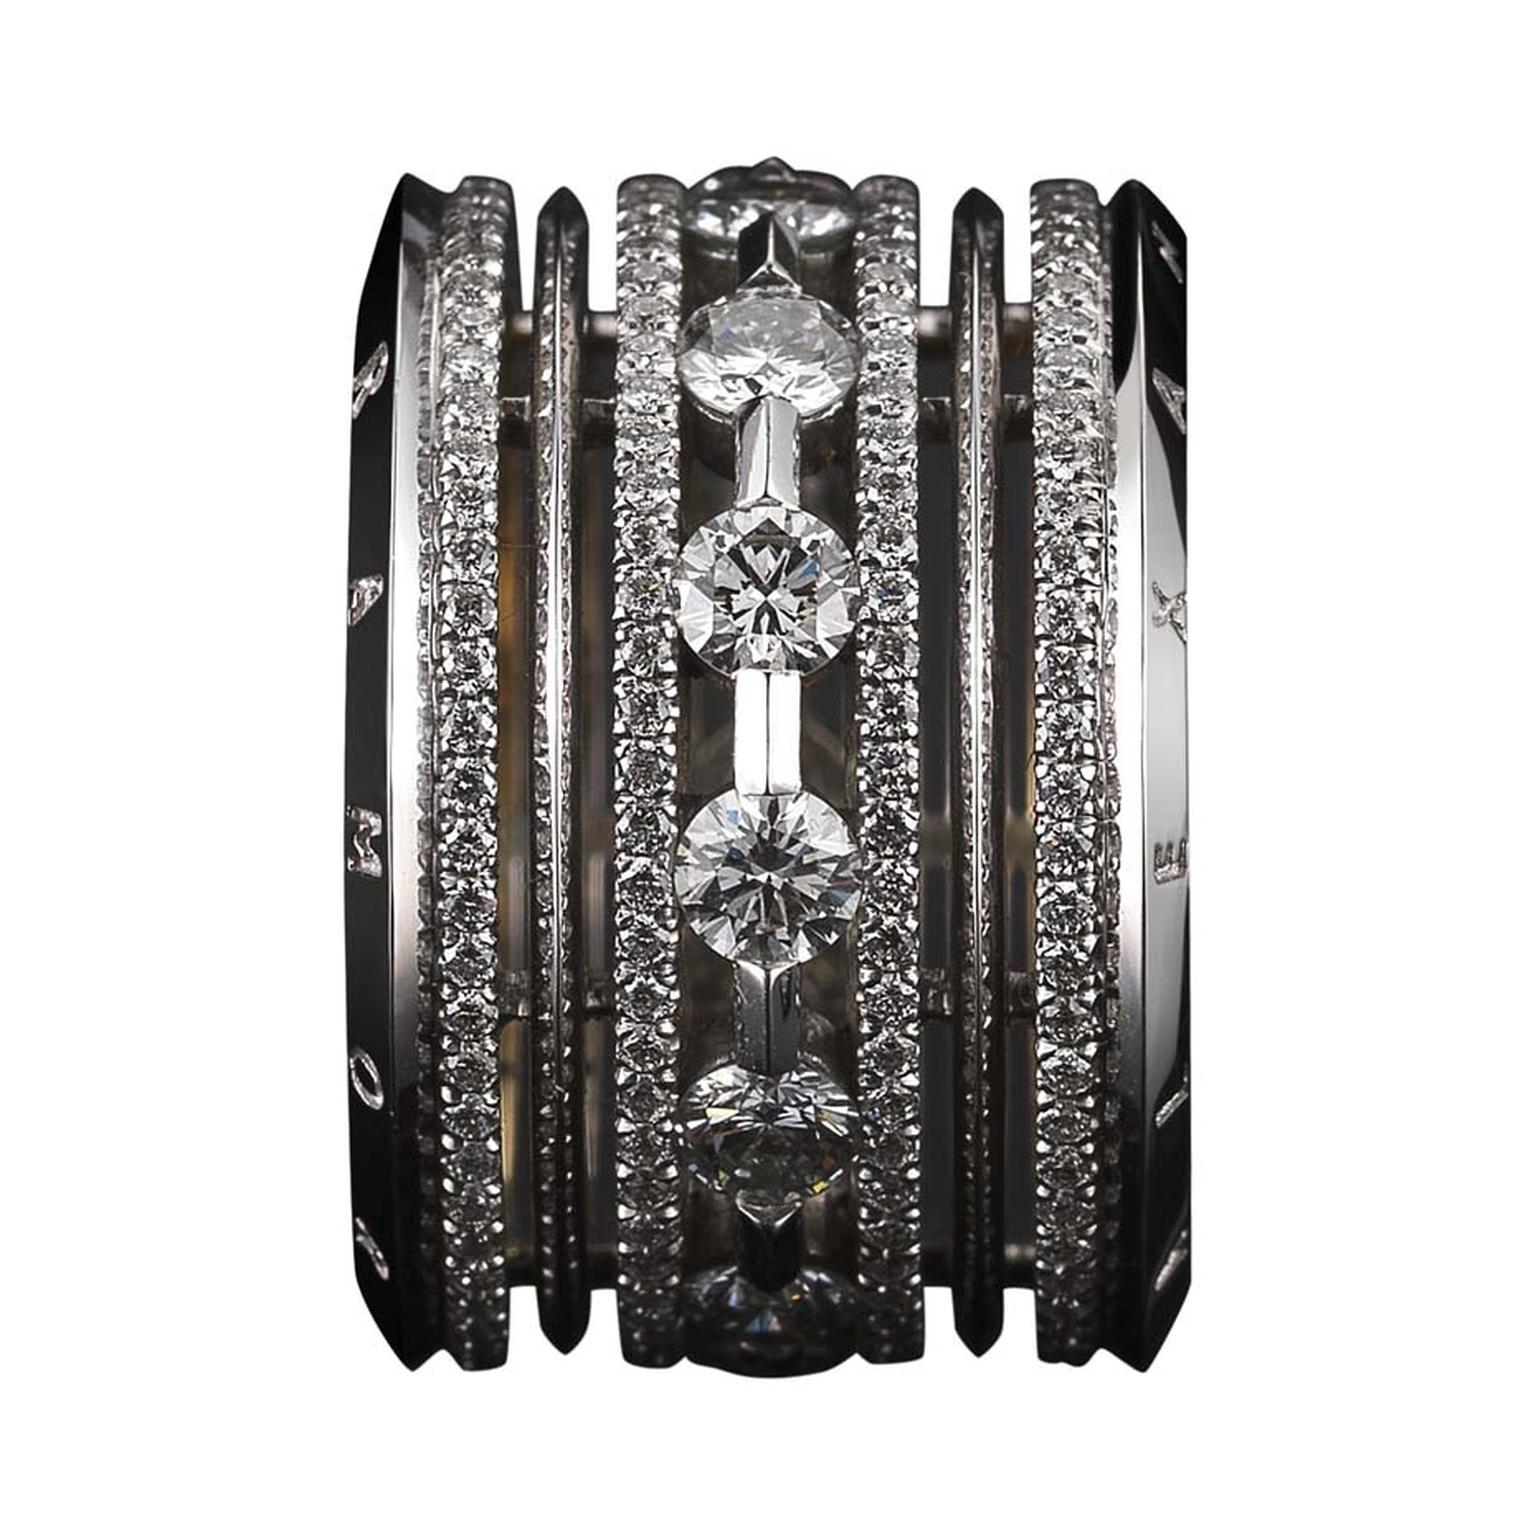 Limited edition wide eternity band featuring brilliant-cut diamonds, with Alexandra Mor's signature details of 1mm melee bands and knife-edged wire.